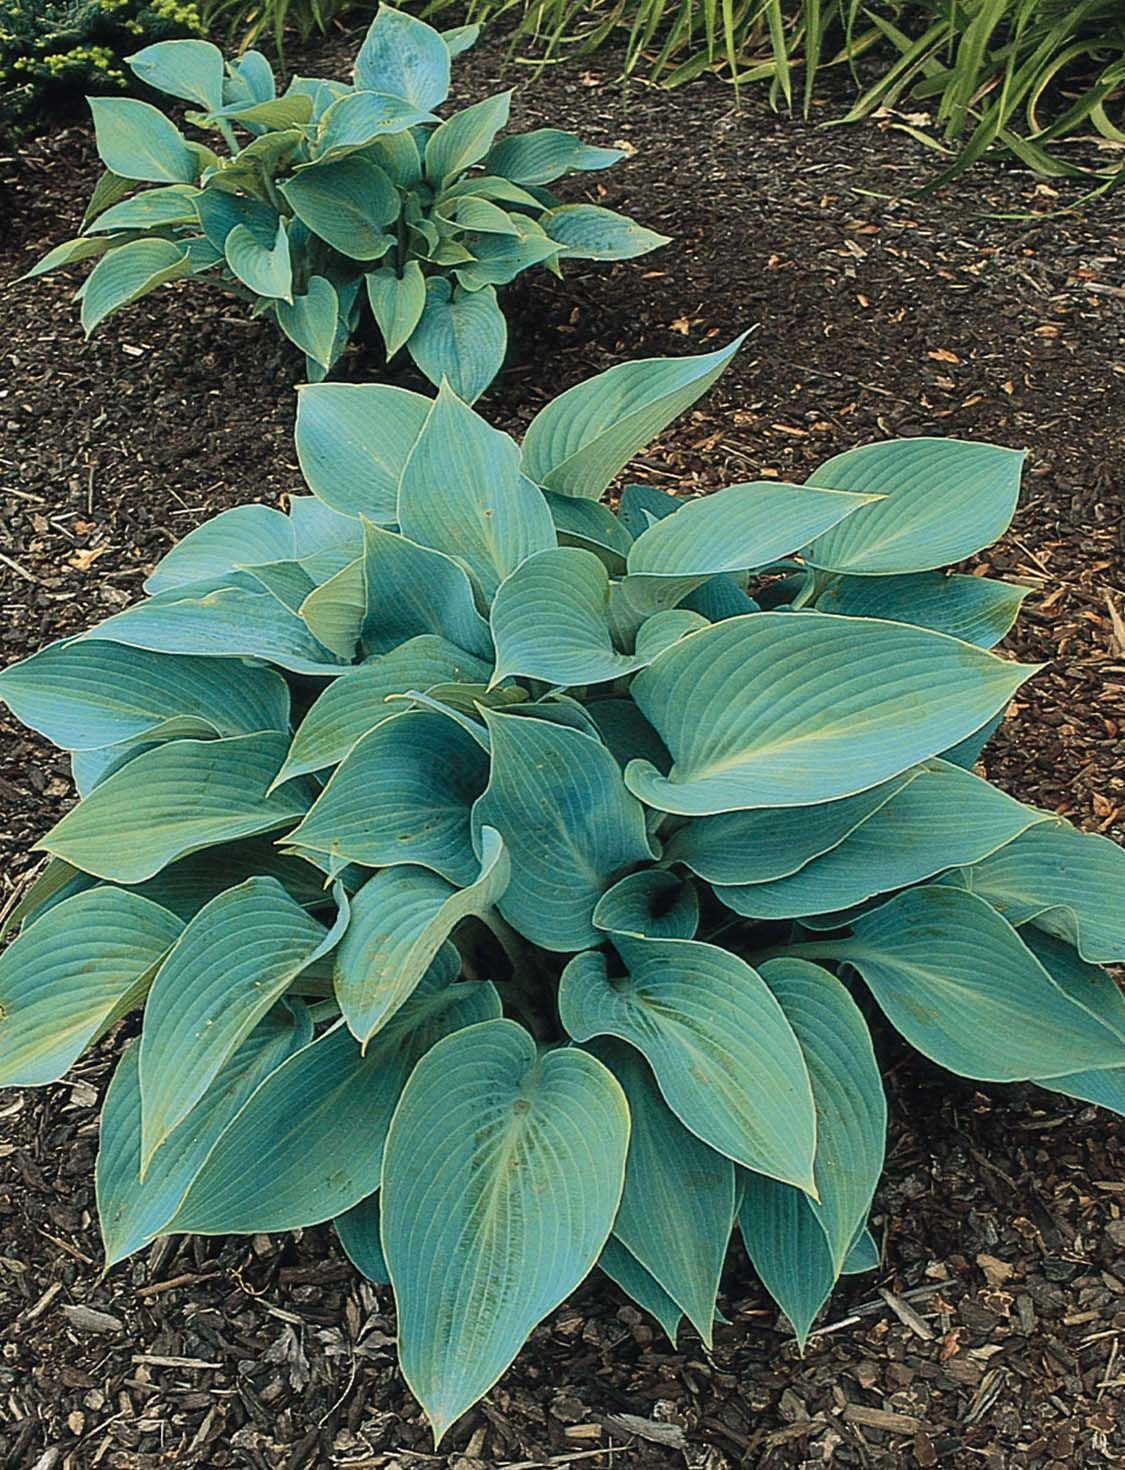 Halcyon Plantain Lily Hosta X Tardiana Striking Blue Gray Foliage And A Compact Form Make This An Excellent Choice For The Small Garden